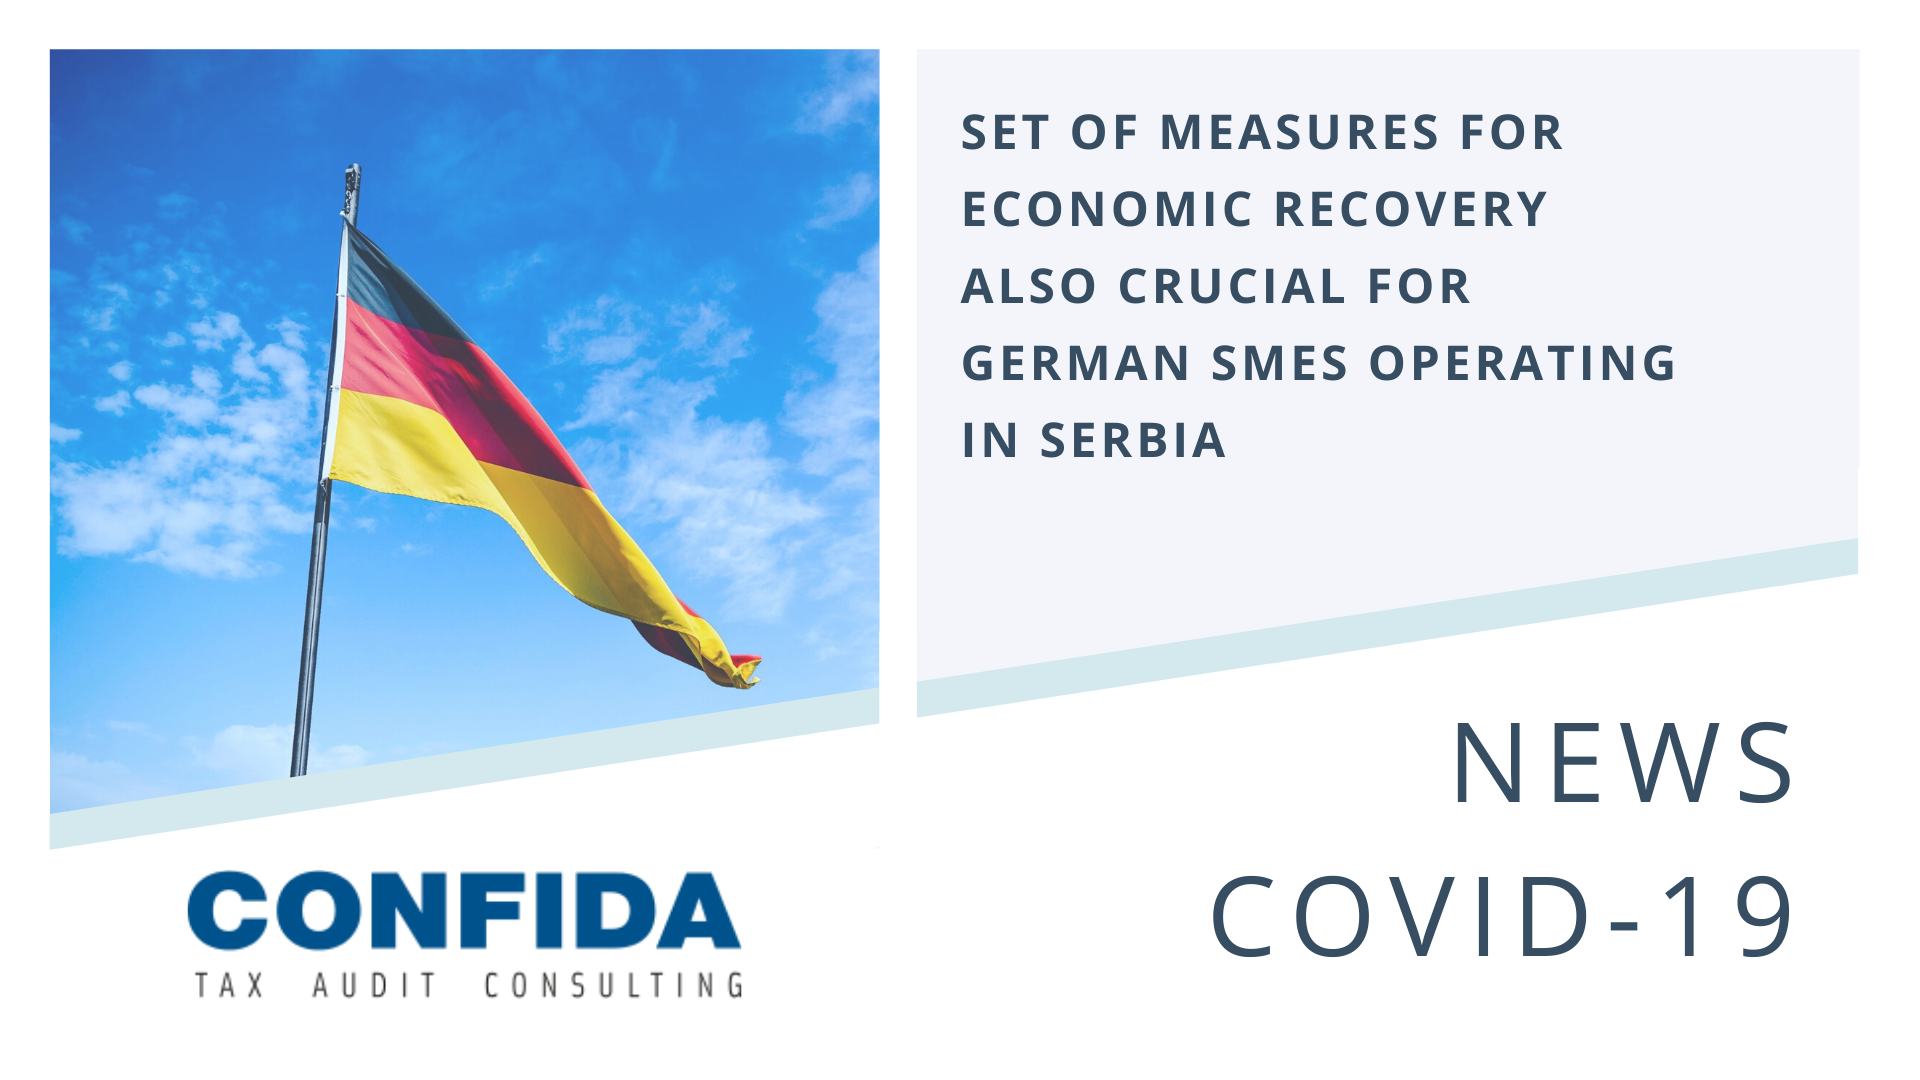 Set of Measures for Economic Recovery also Crucial for German SMEs Operating in Serbia